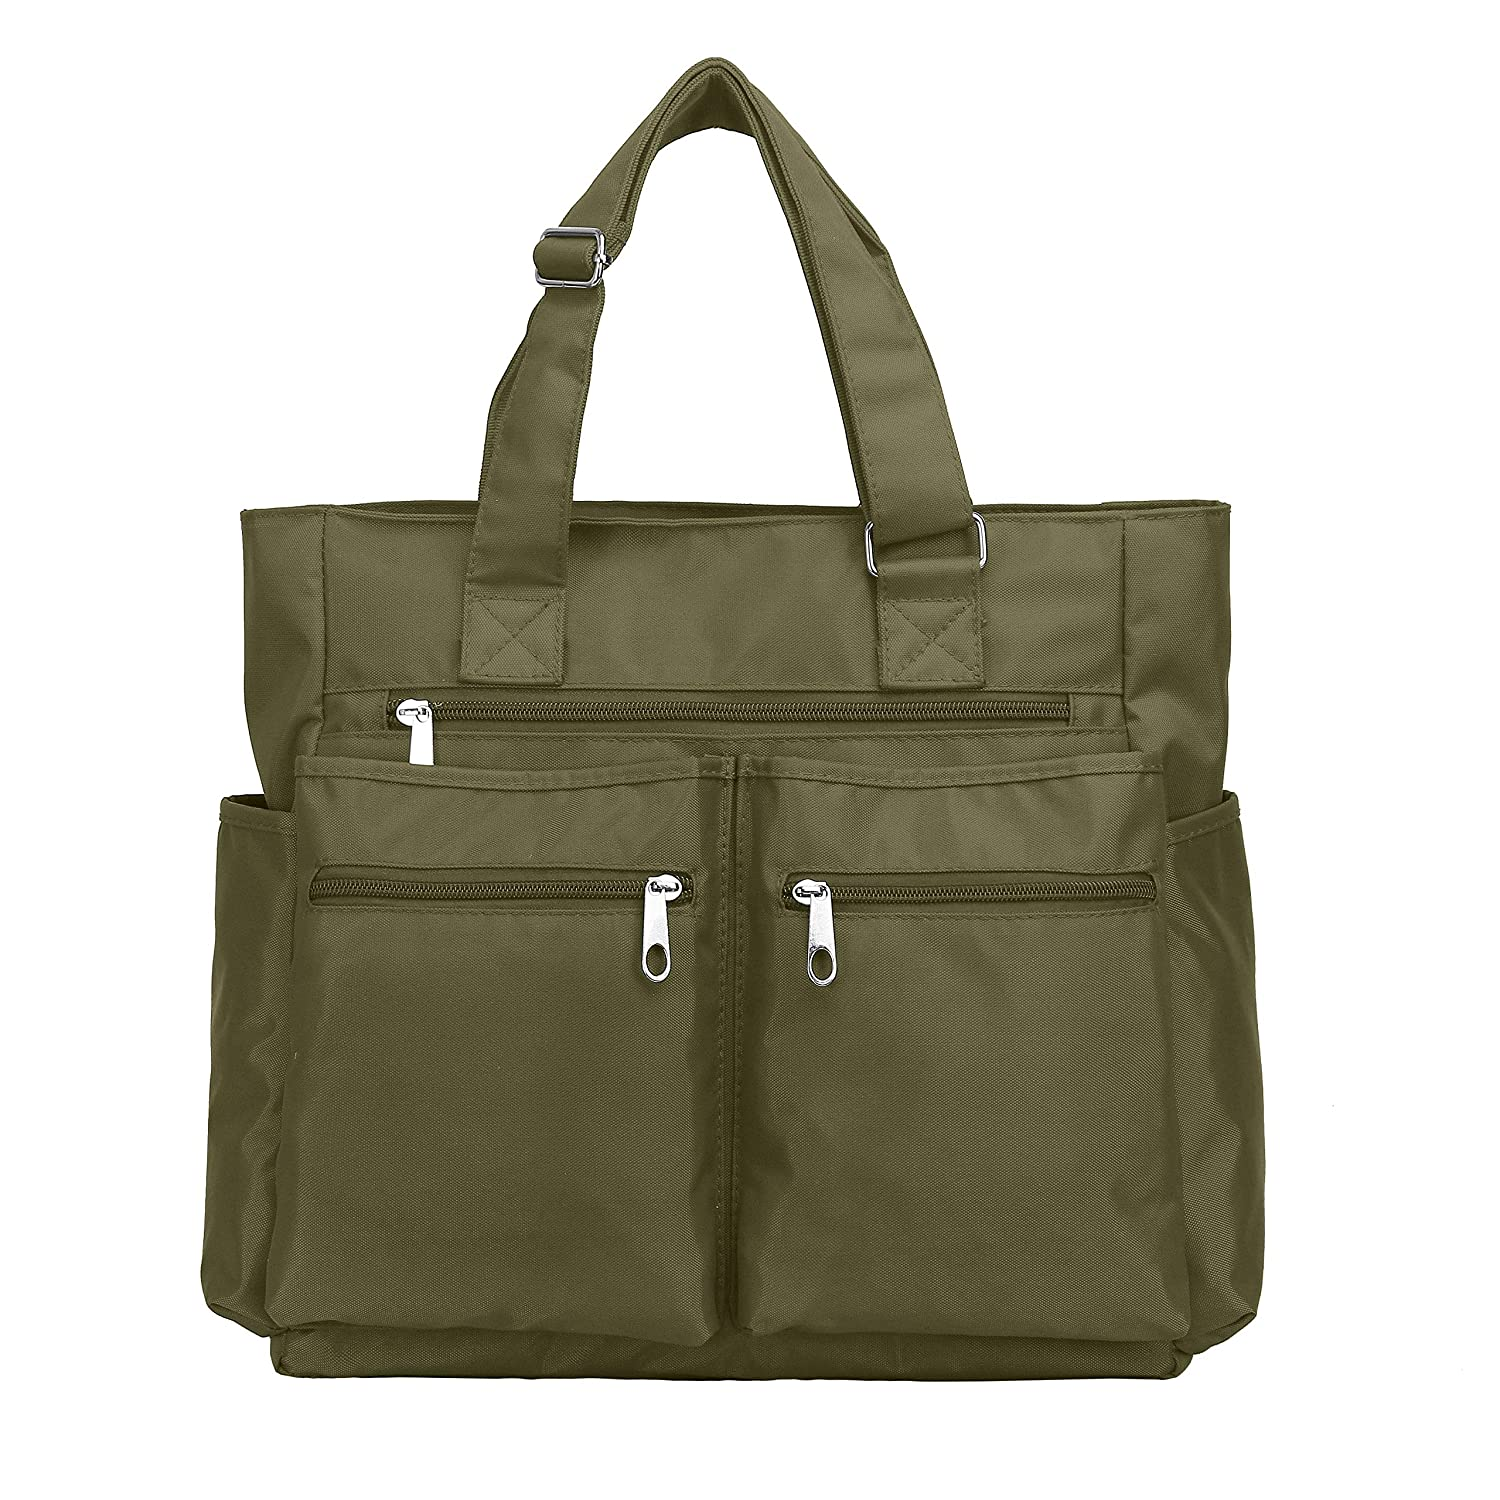 e6867fa04 Amazon.com: Waterproof Nylon Oxford Multi-pocket Tote Bags Fashion Travel  Laptop Briefcase Work Purse for Women & Men (Army Green): Shoes